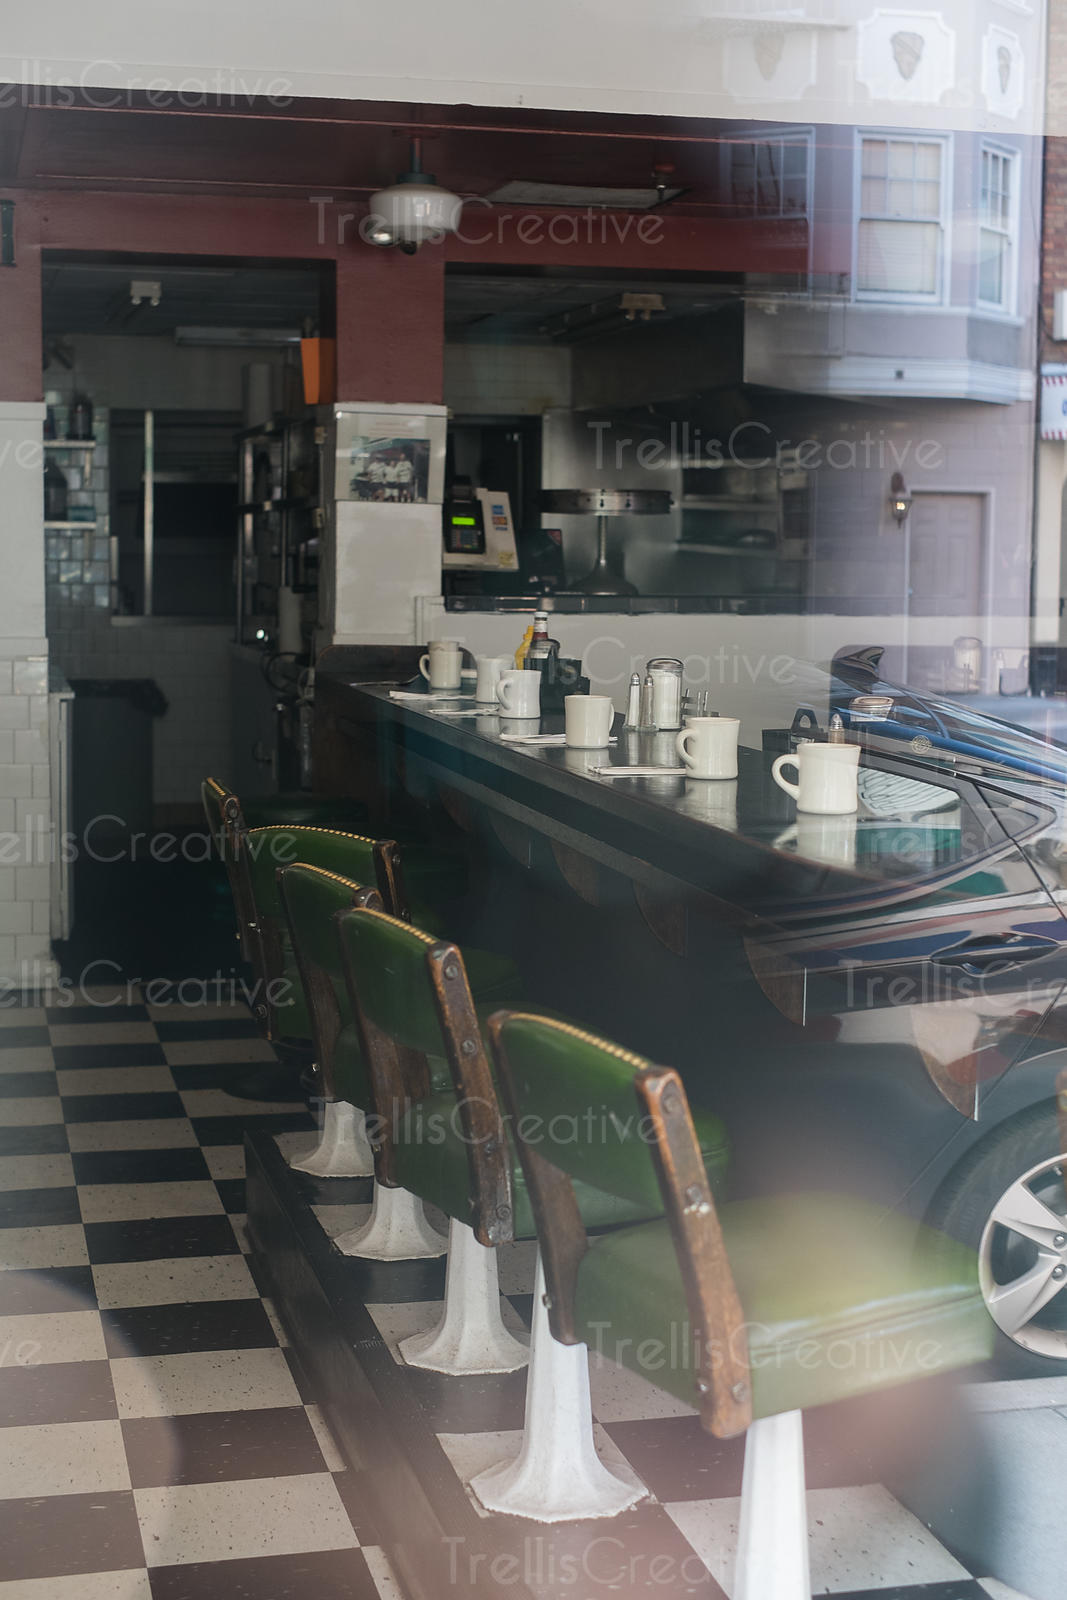 Interior of an old diner seen through window